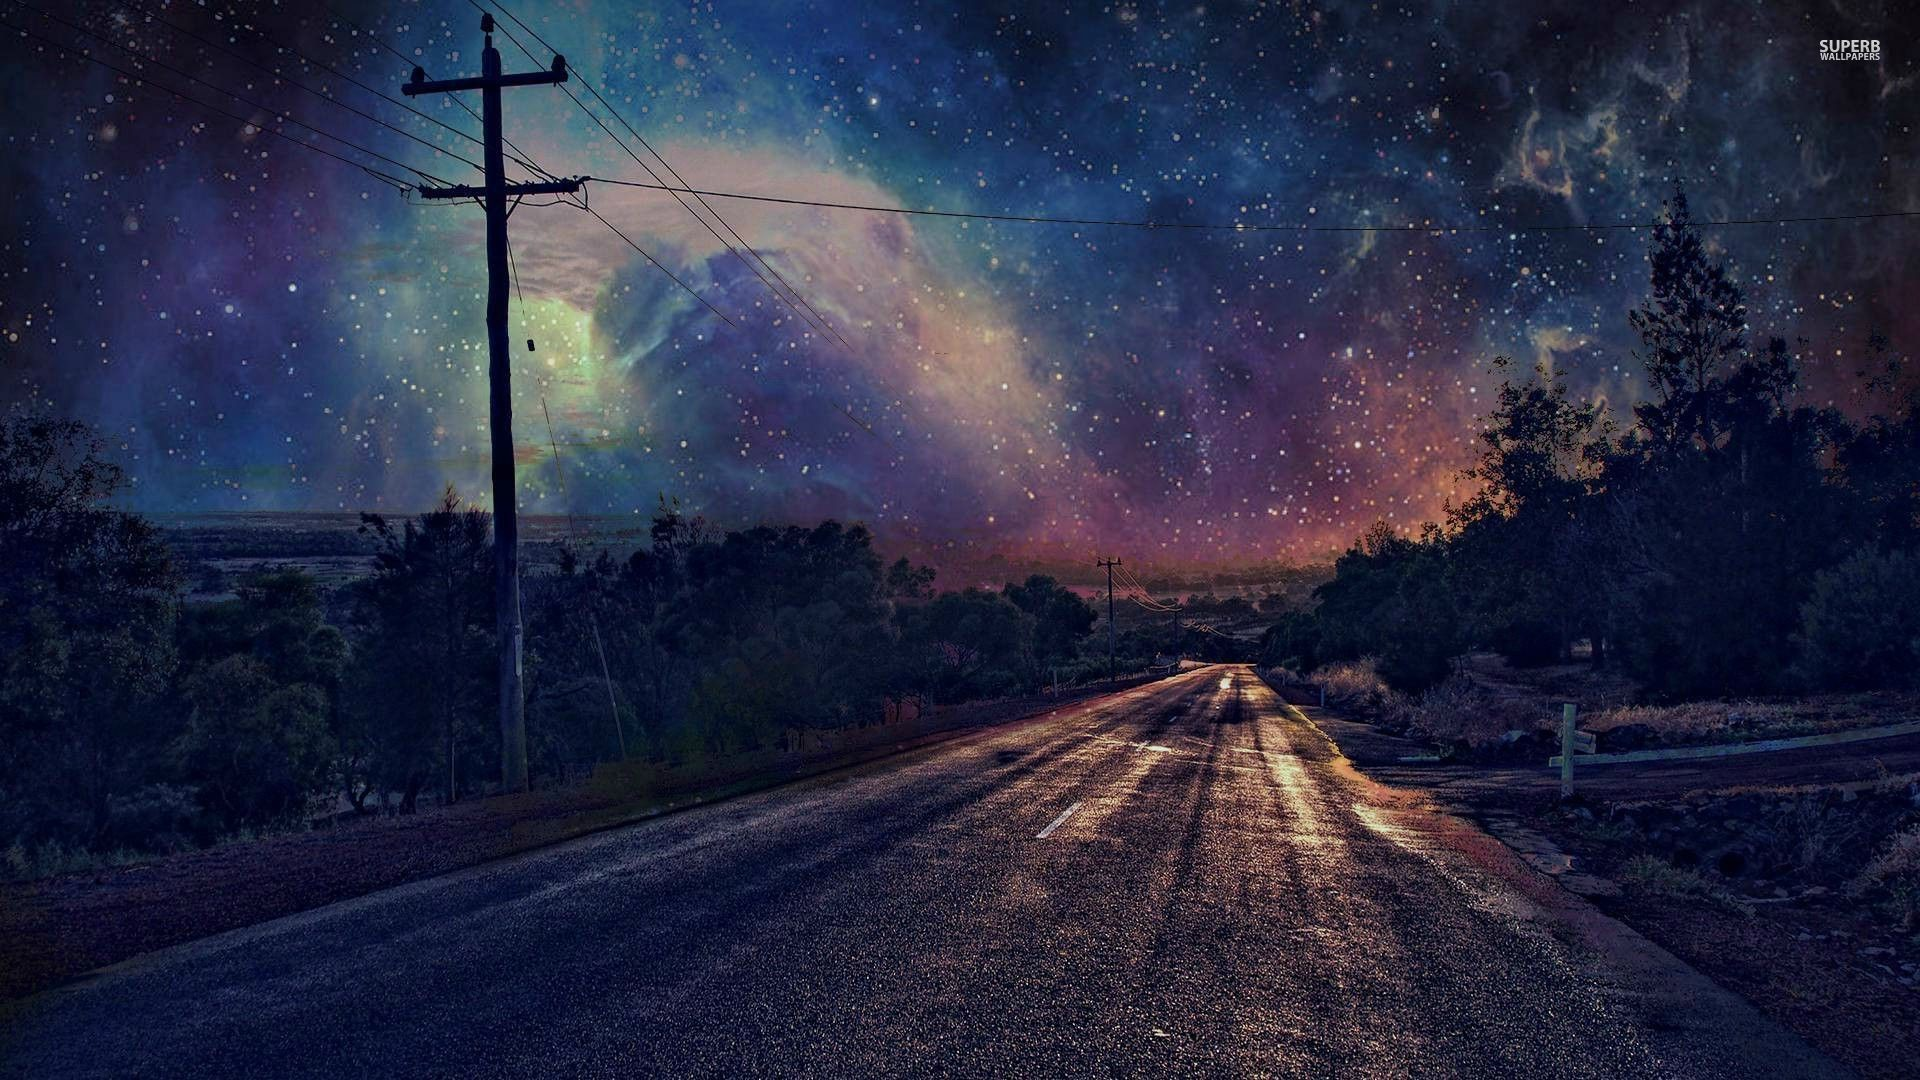 Download and use 40,000+ desktop wallpaper aesthetic stock photos for free. Blue Starry Sky Aesthetic Wallpapers posted by John Walker